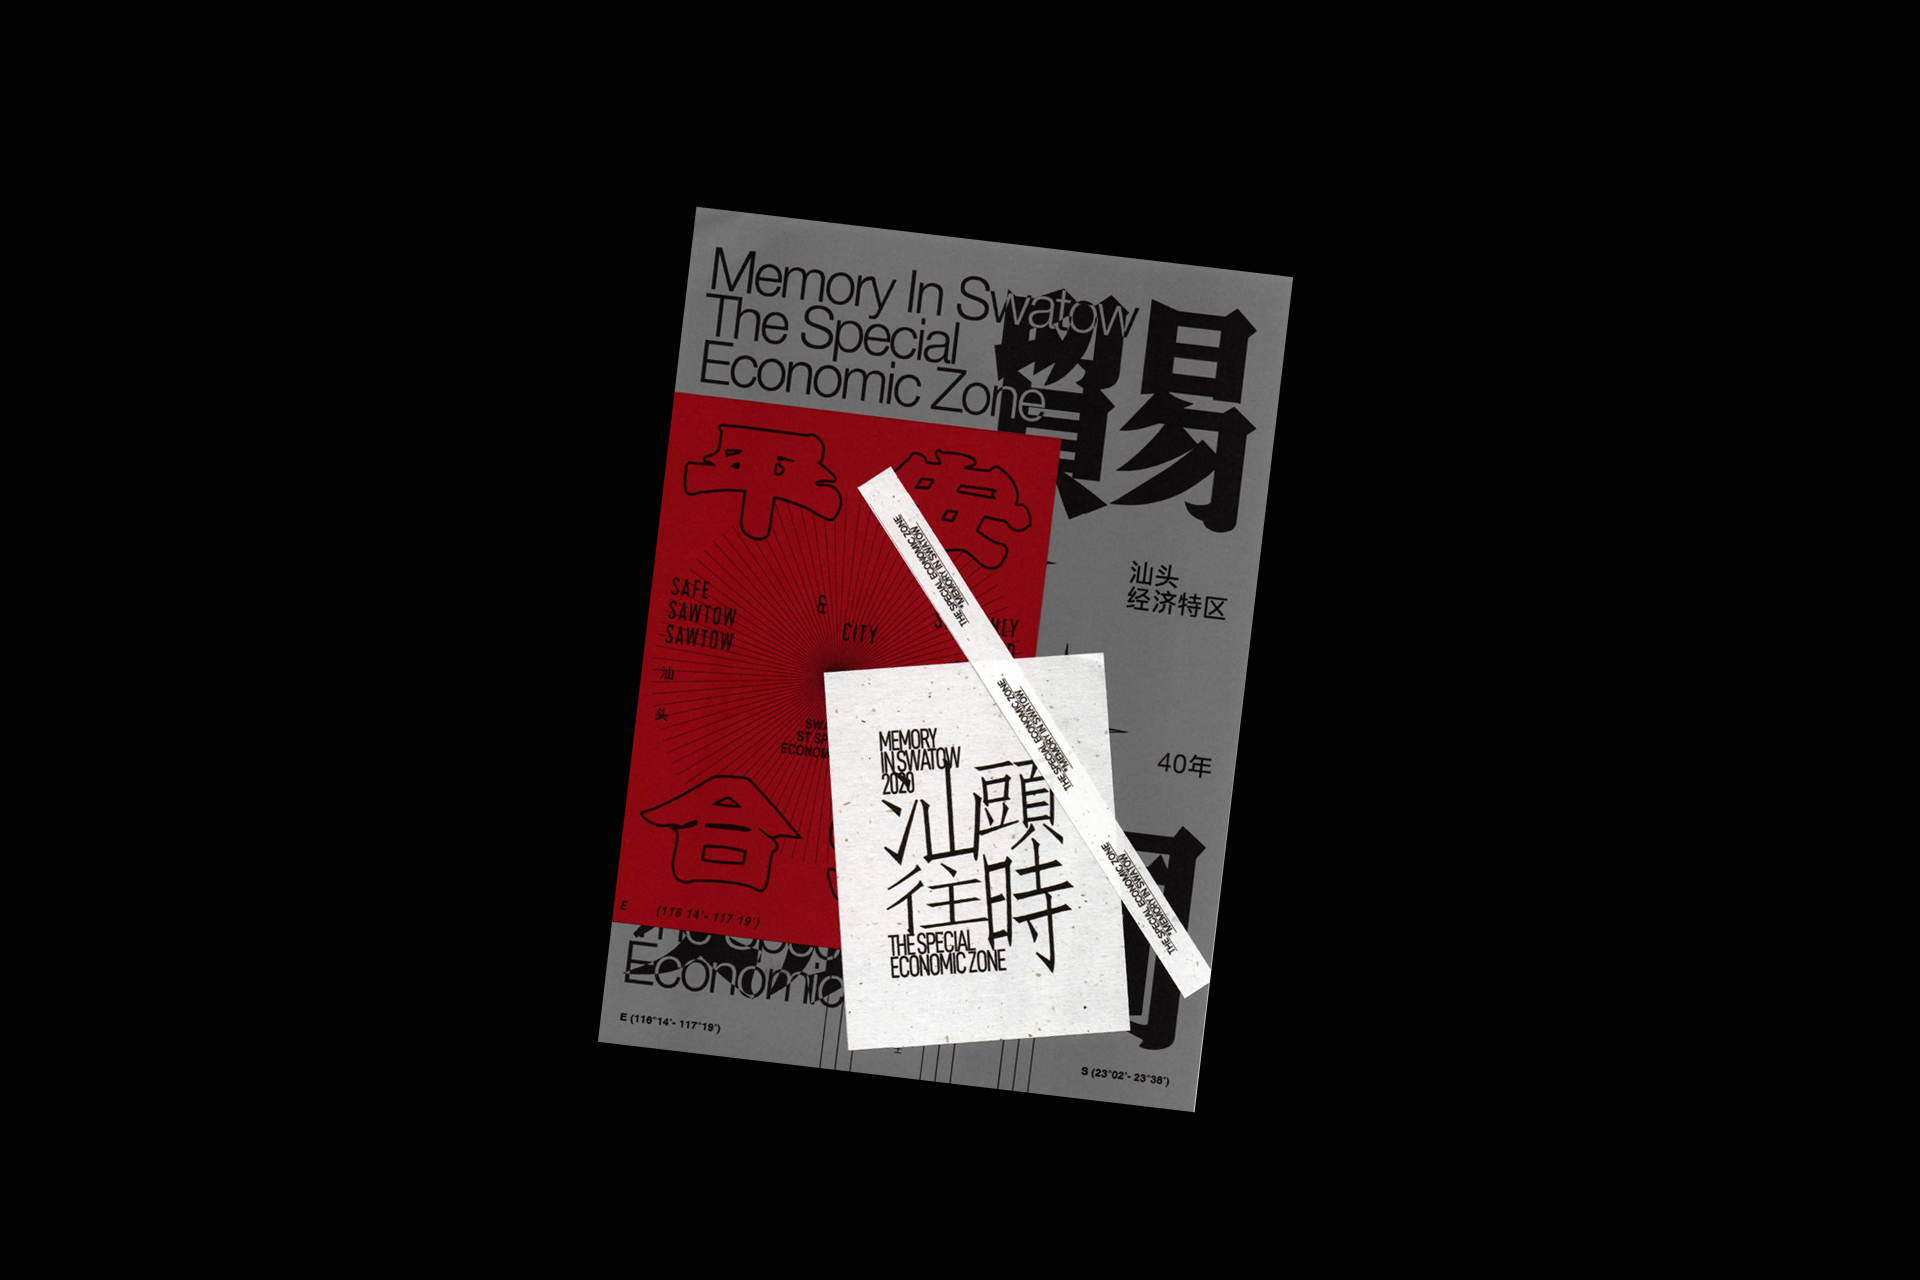 Reproduction of Signature Fonts-Memories of Swatow